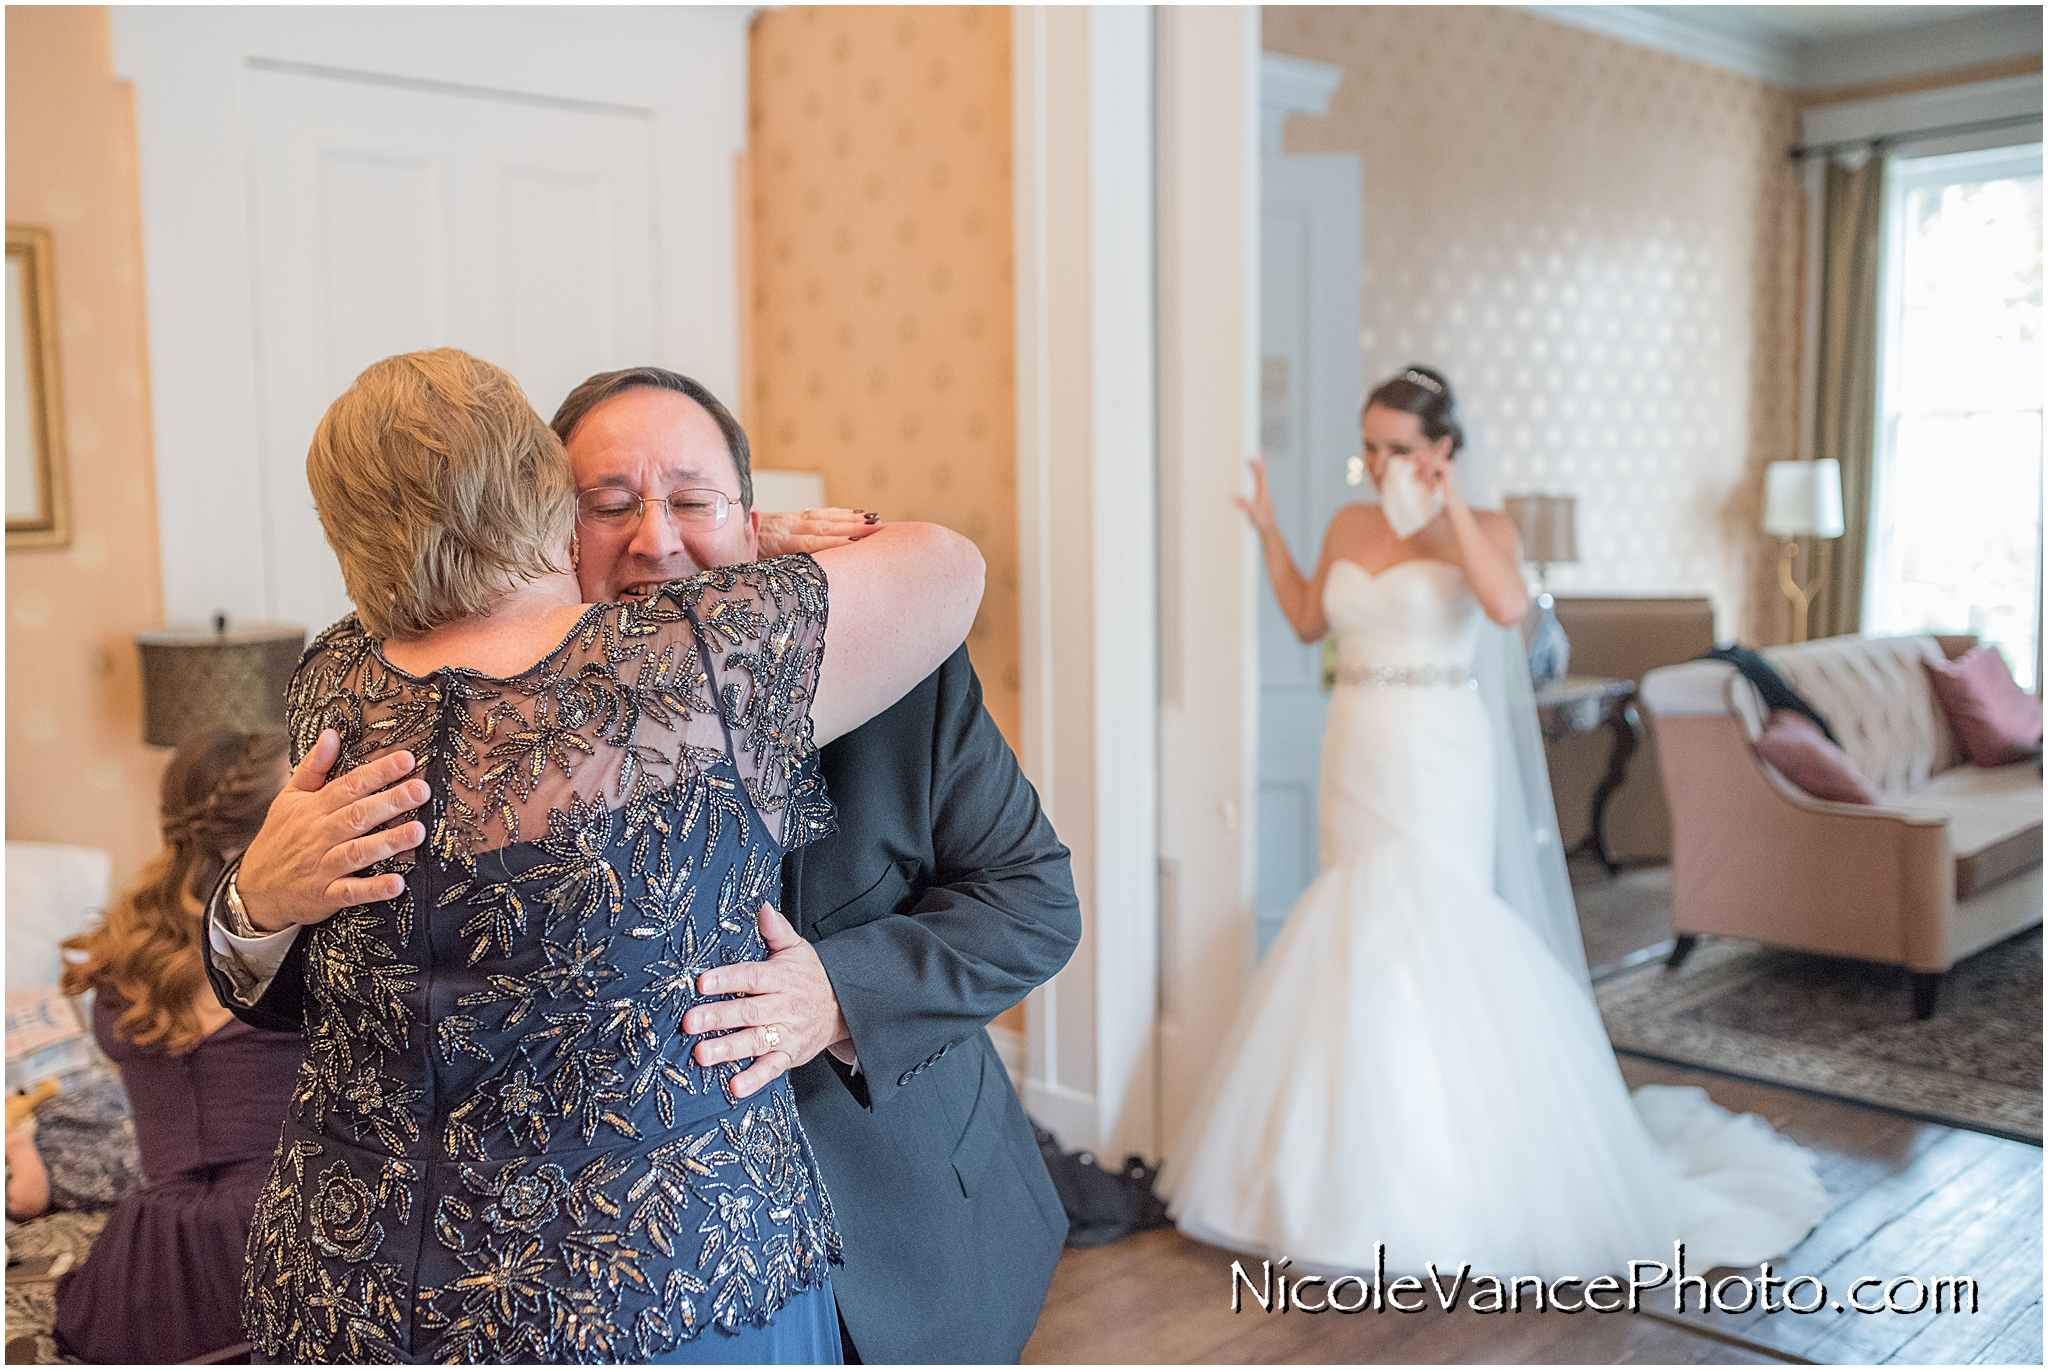 Mom and dad embrace and share a moment together as they share their happiness for their daughter on her wedding day.